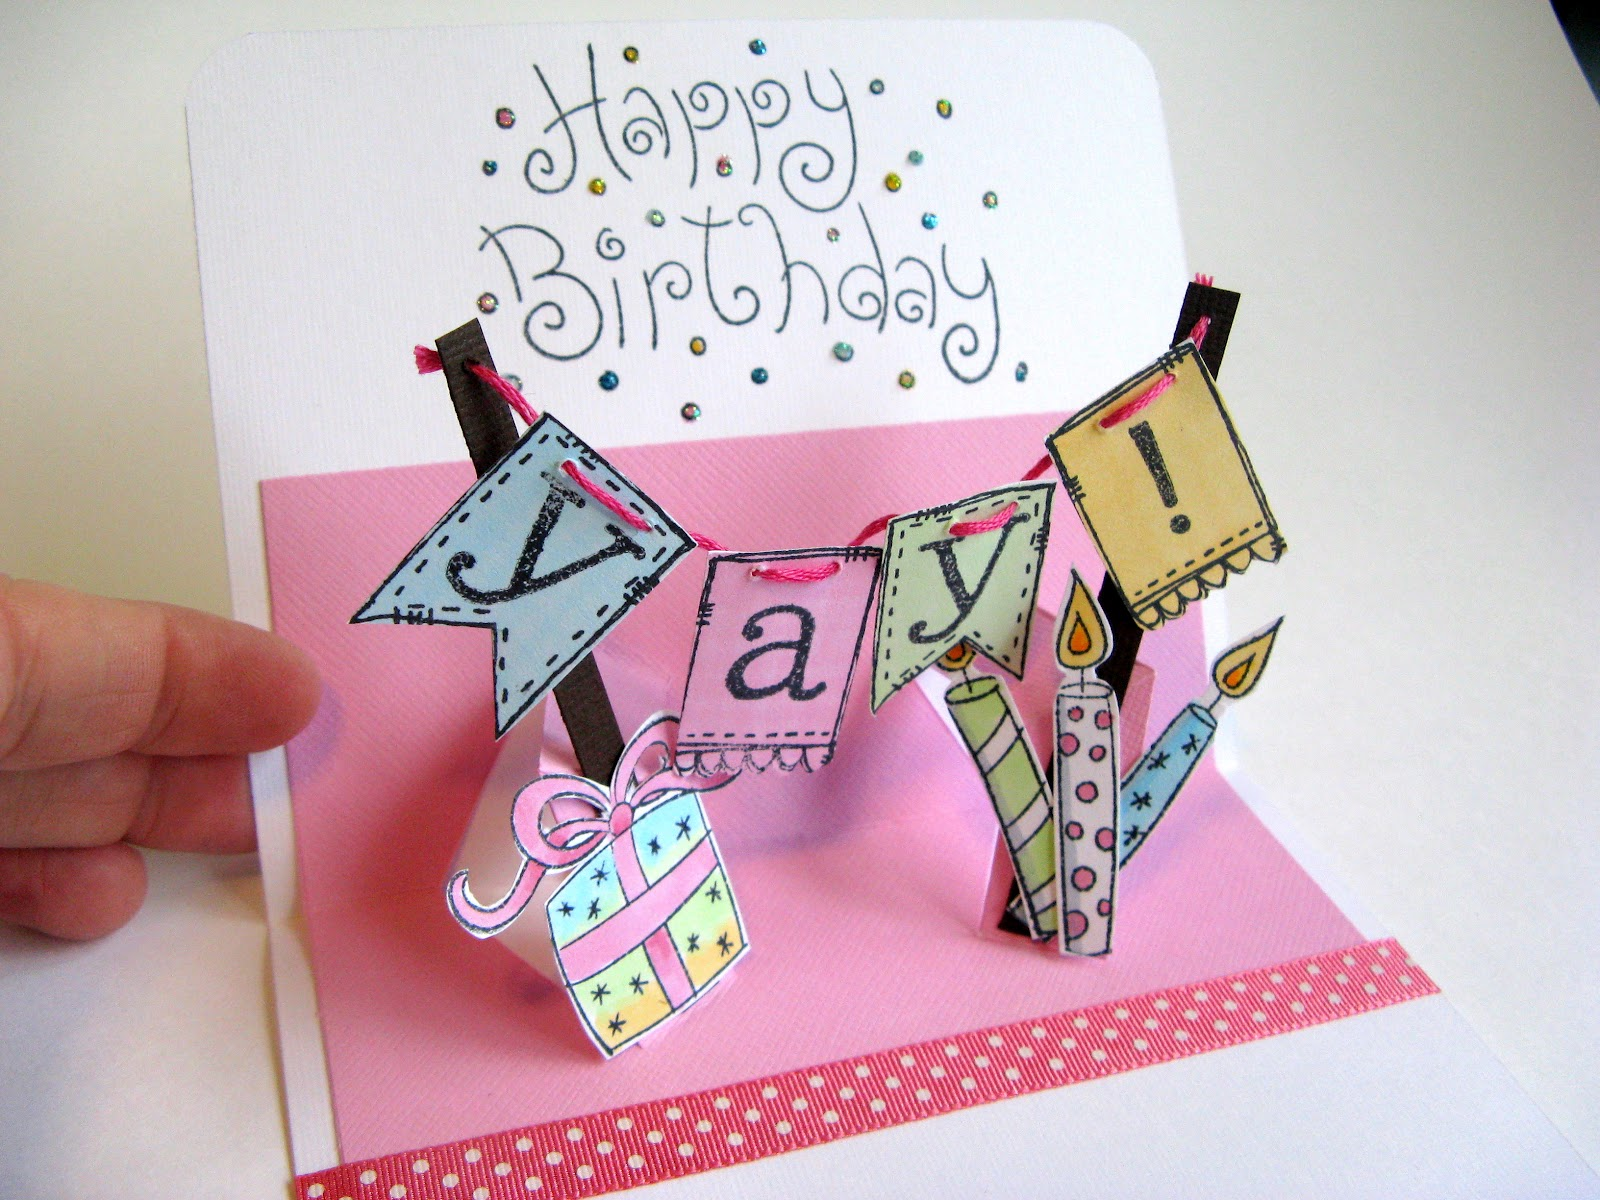 Elves in the attic yay its your birthday the posts fold into the middle when the card is closed and pop outward as its opened the trick to the mechanism is that the pop up is cut on kristyandbryce Choice Image